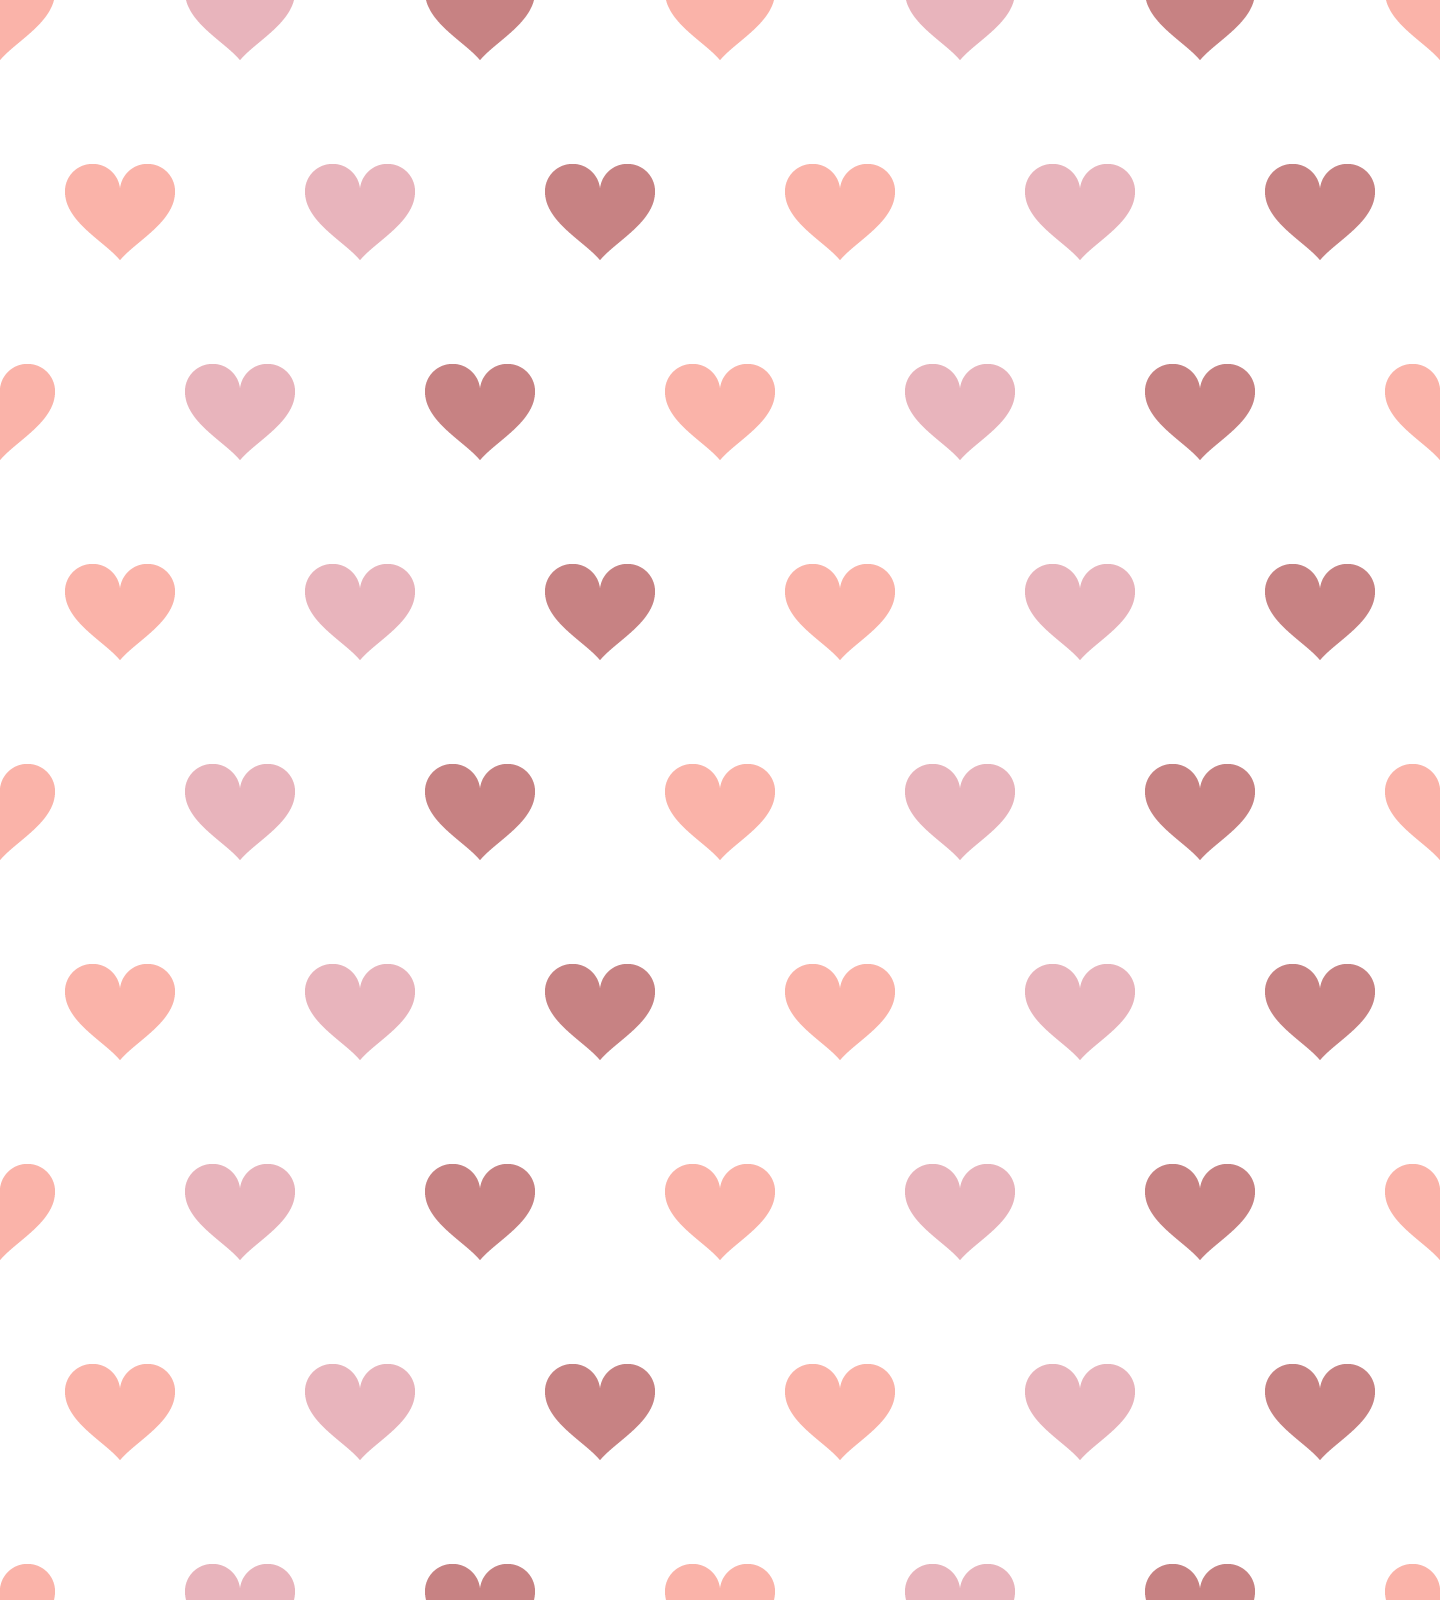 Pink Hearts Vector Pattern On White Background (SVG)